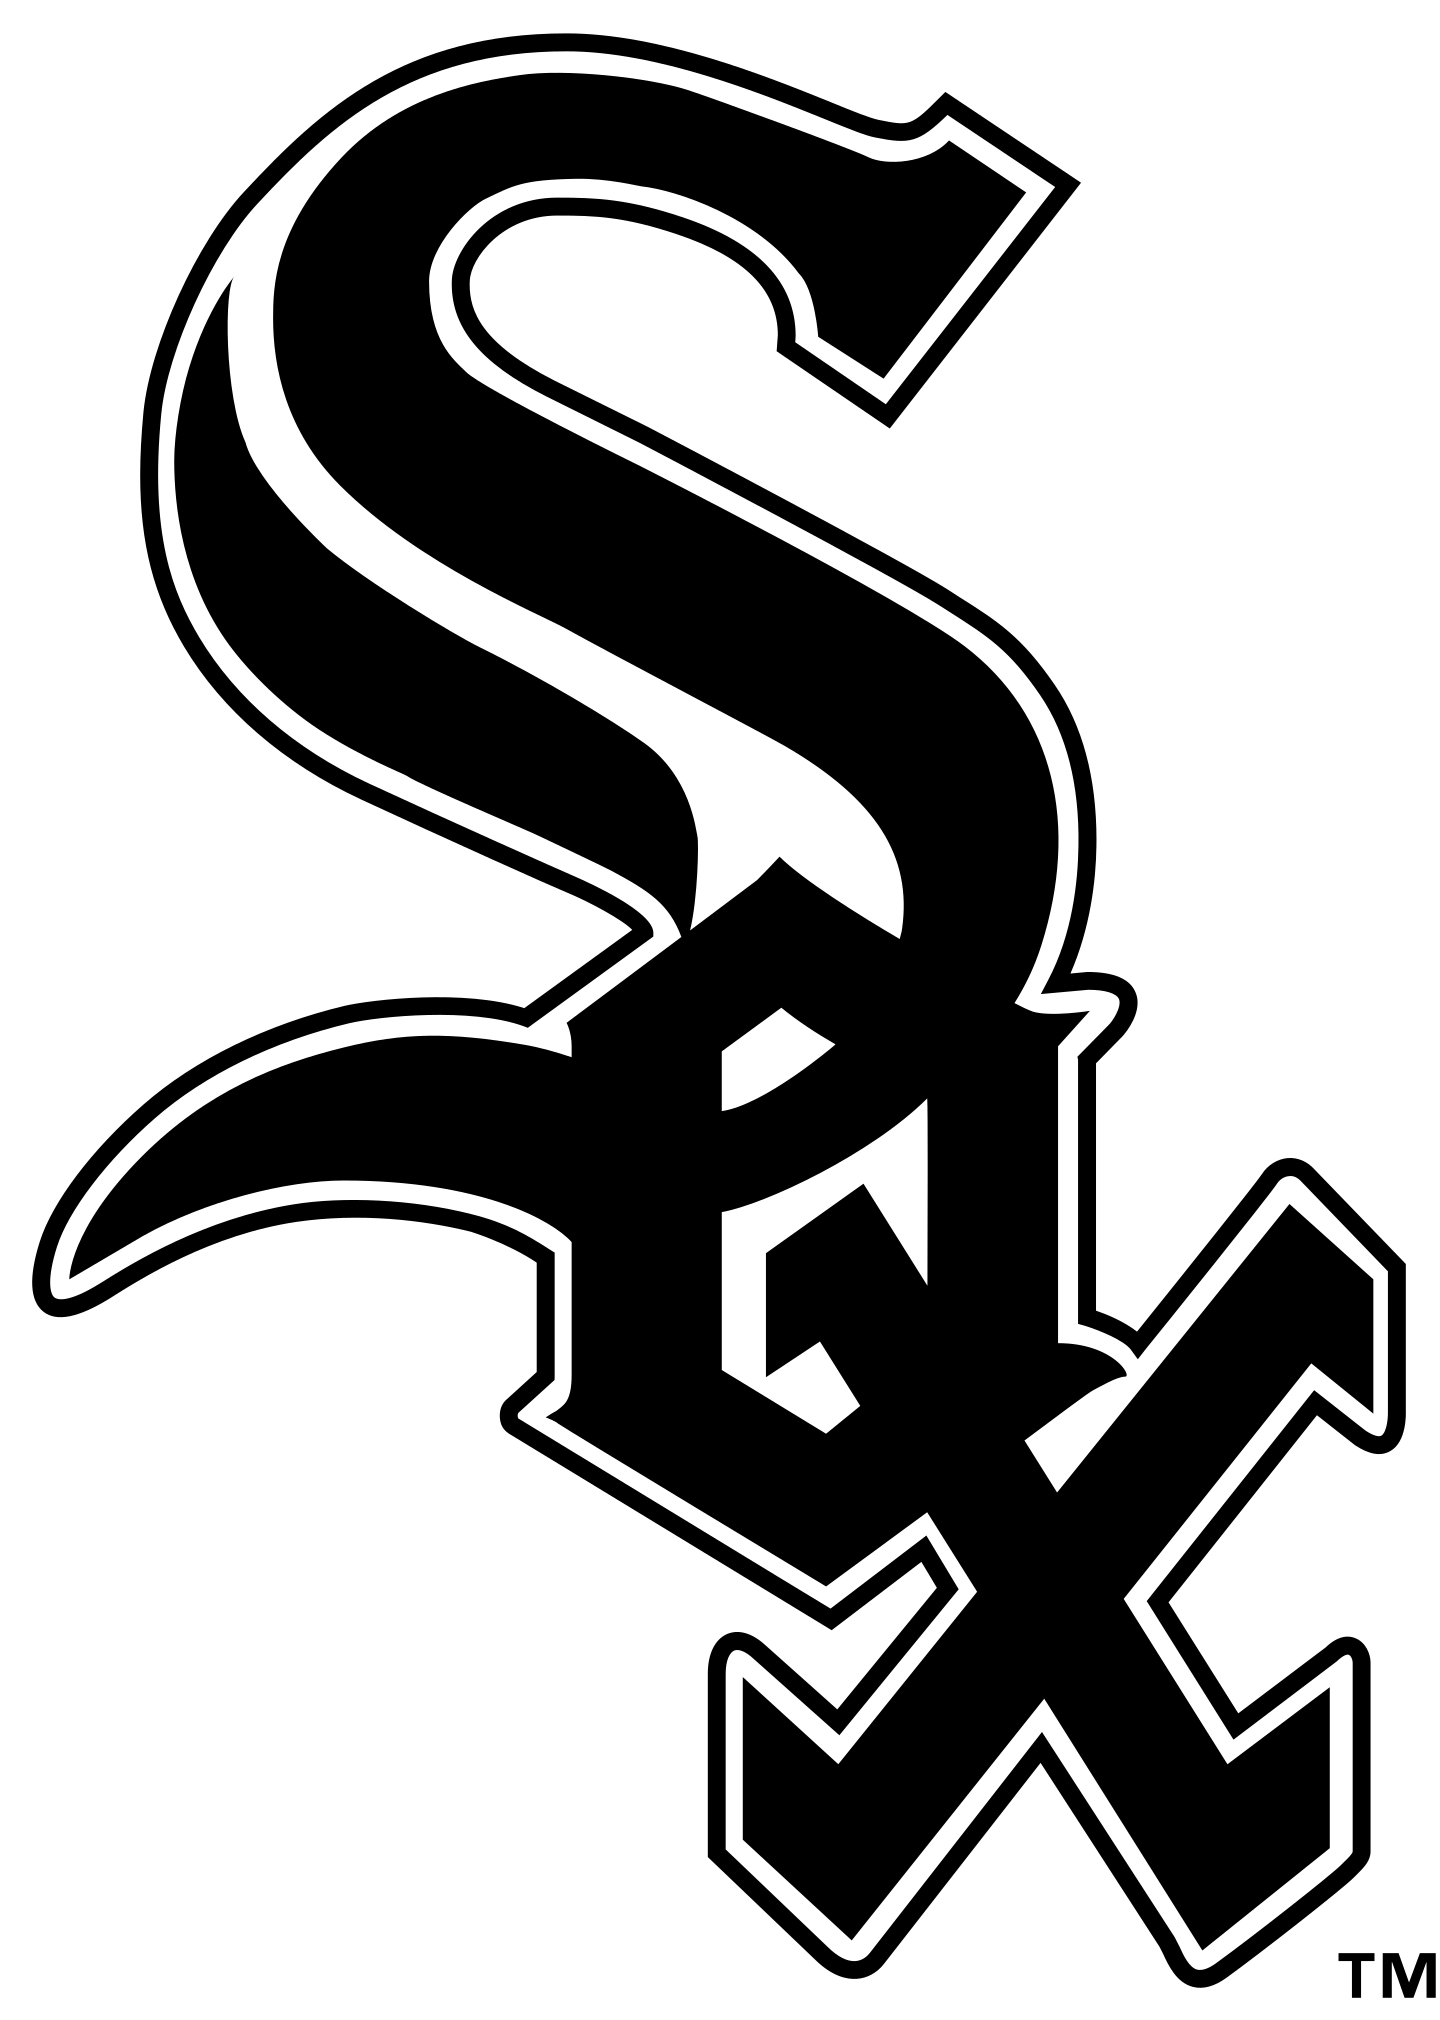 chicago white sox logo 2 - Chicago White Sox Logo